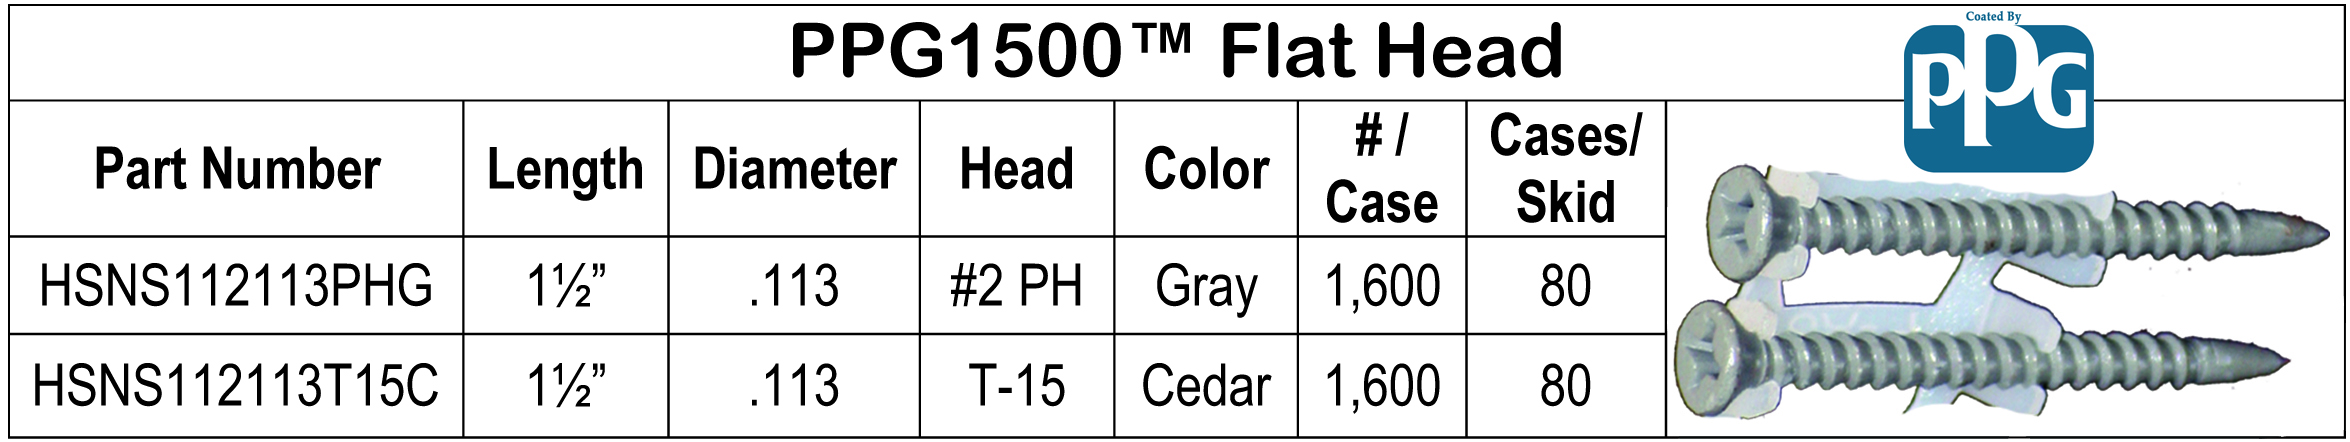 PPG1500 Gray Flat Head Plastic Coil